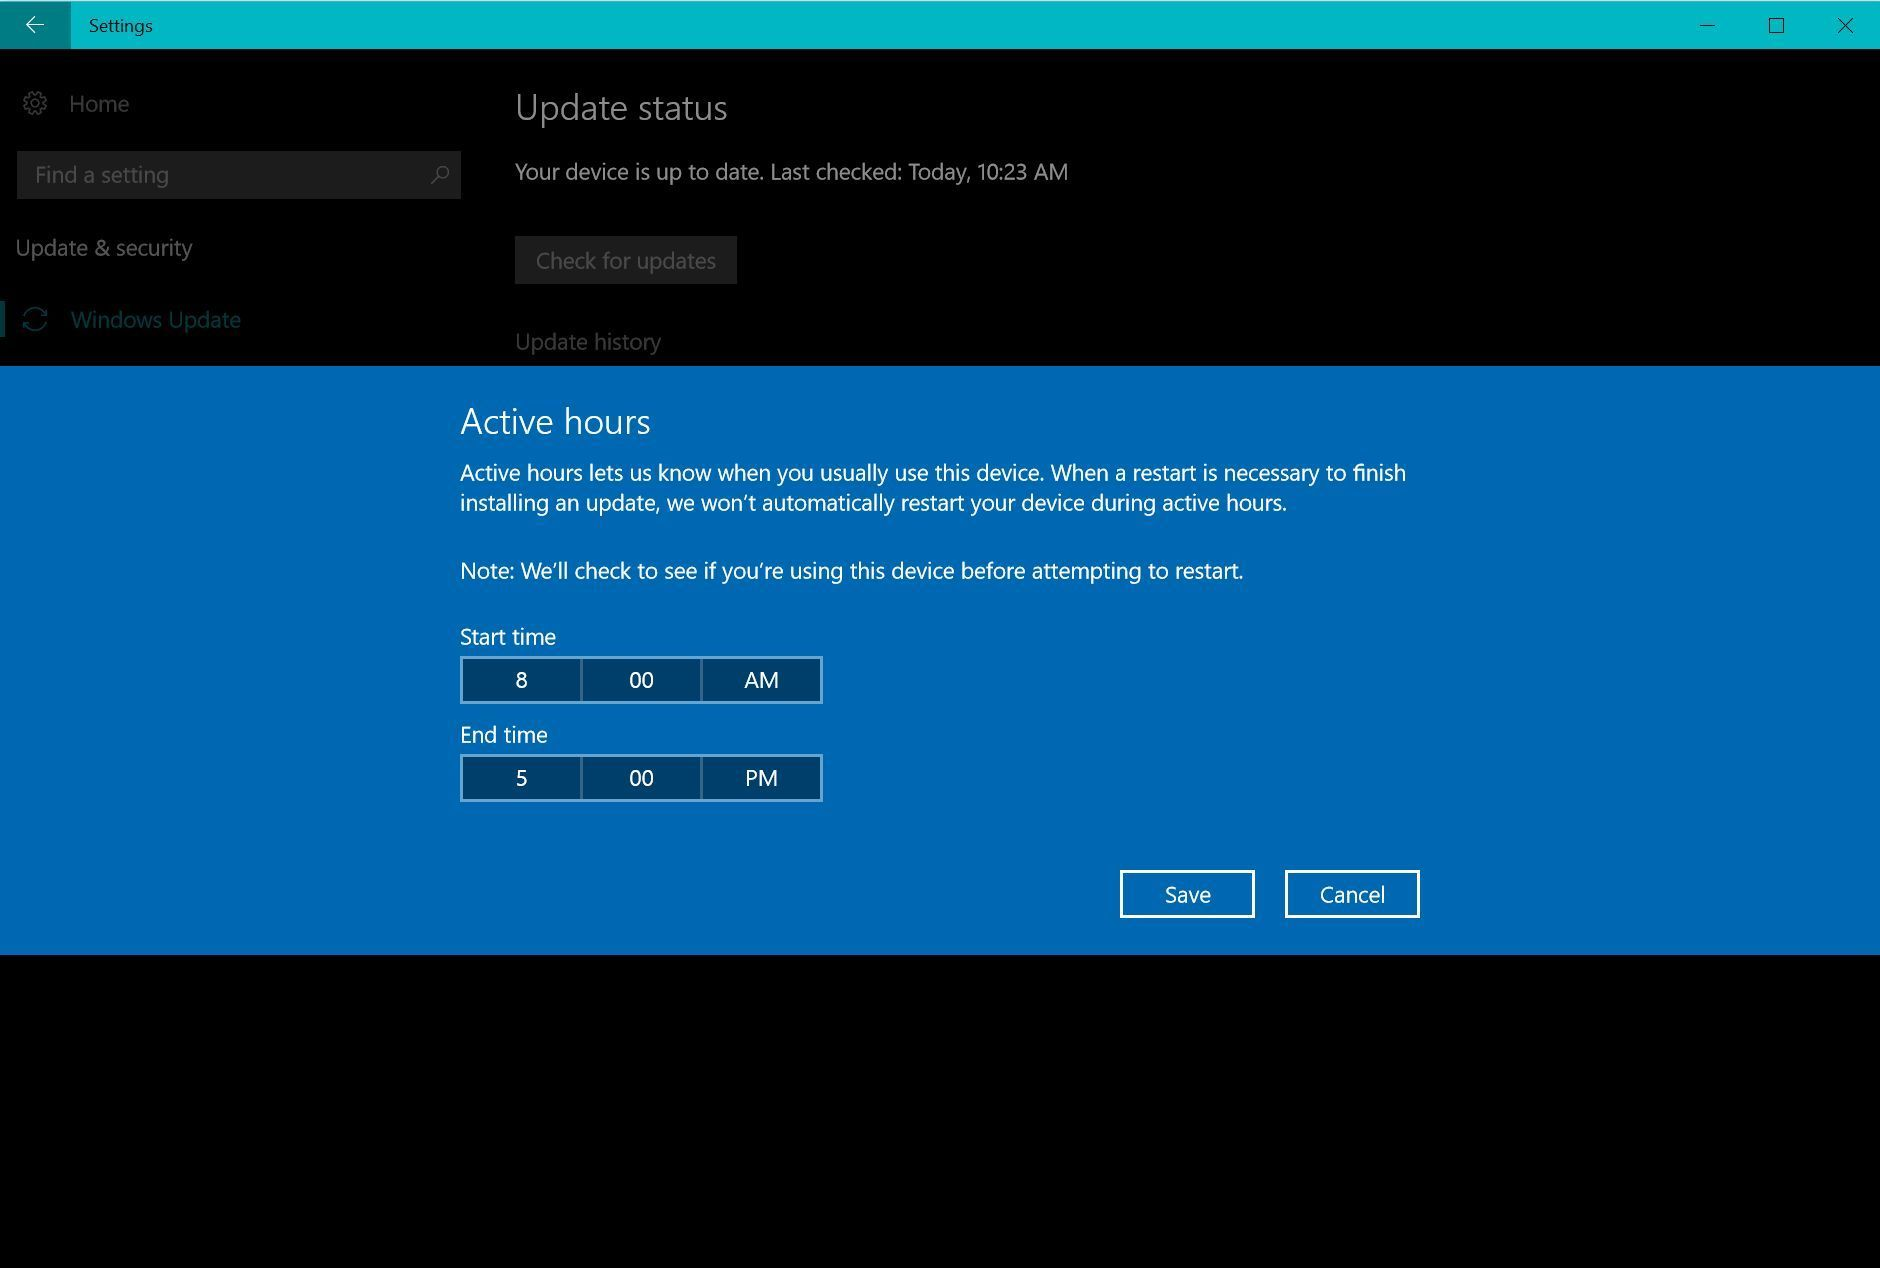 Windows 10 Creators Update Active Hours